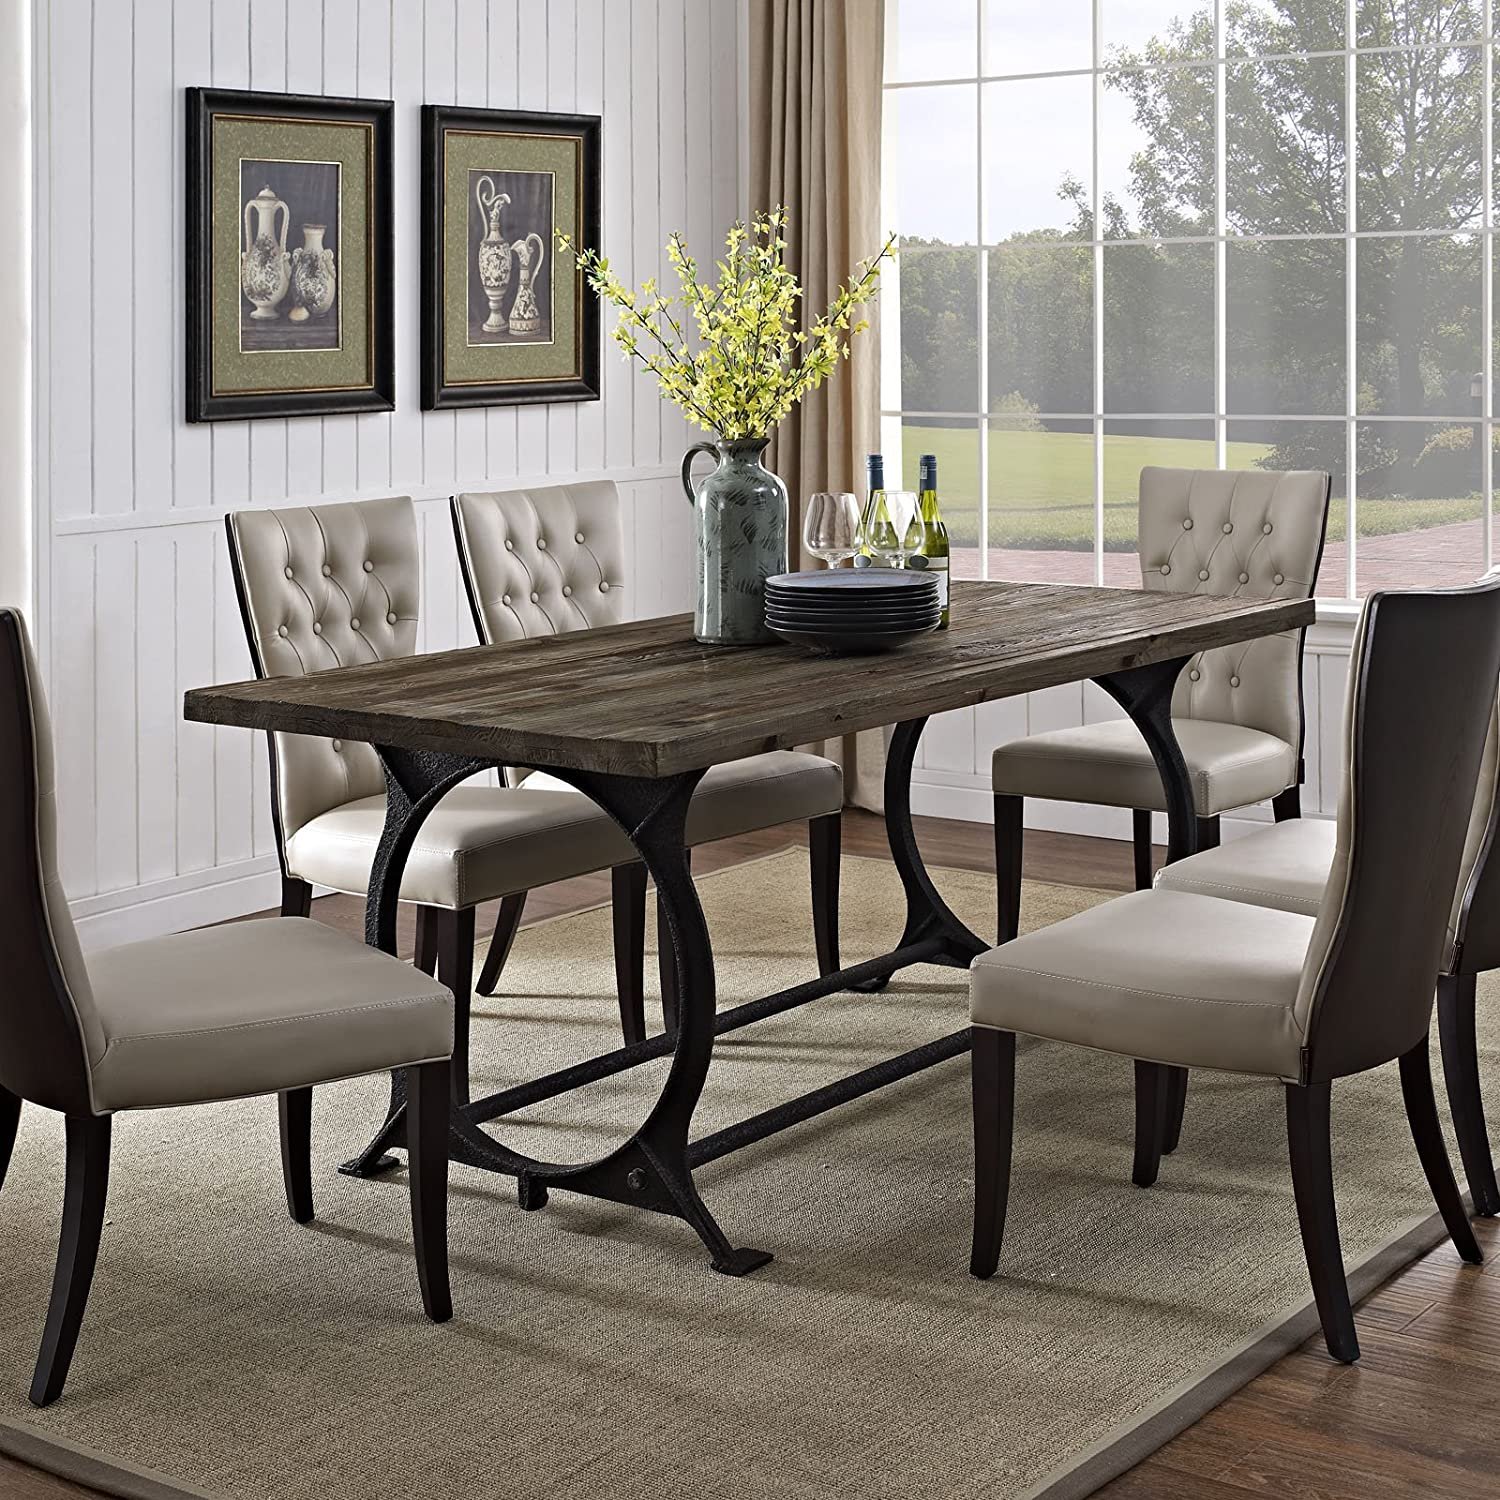 Amazon.com - Modway Effuse Wood Top Dining Table in Brown - Tables